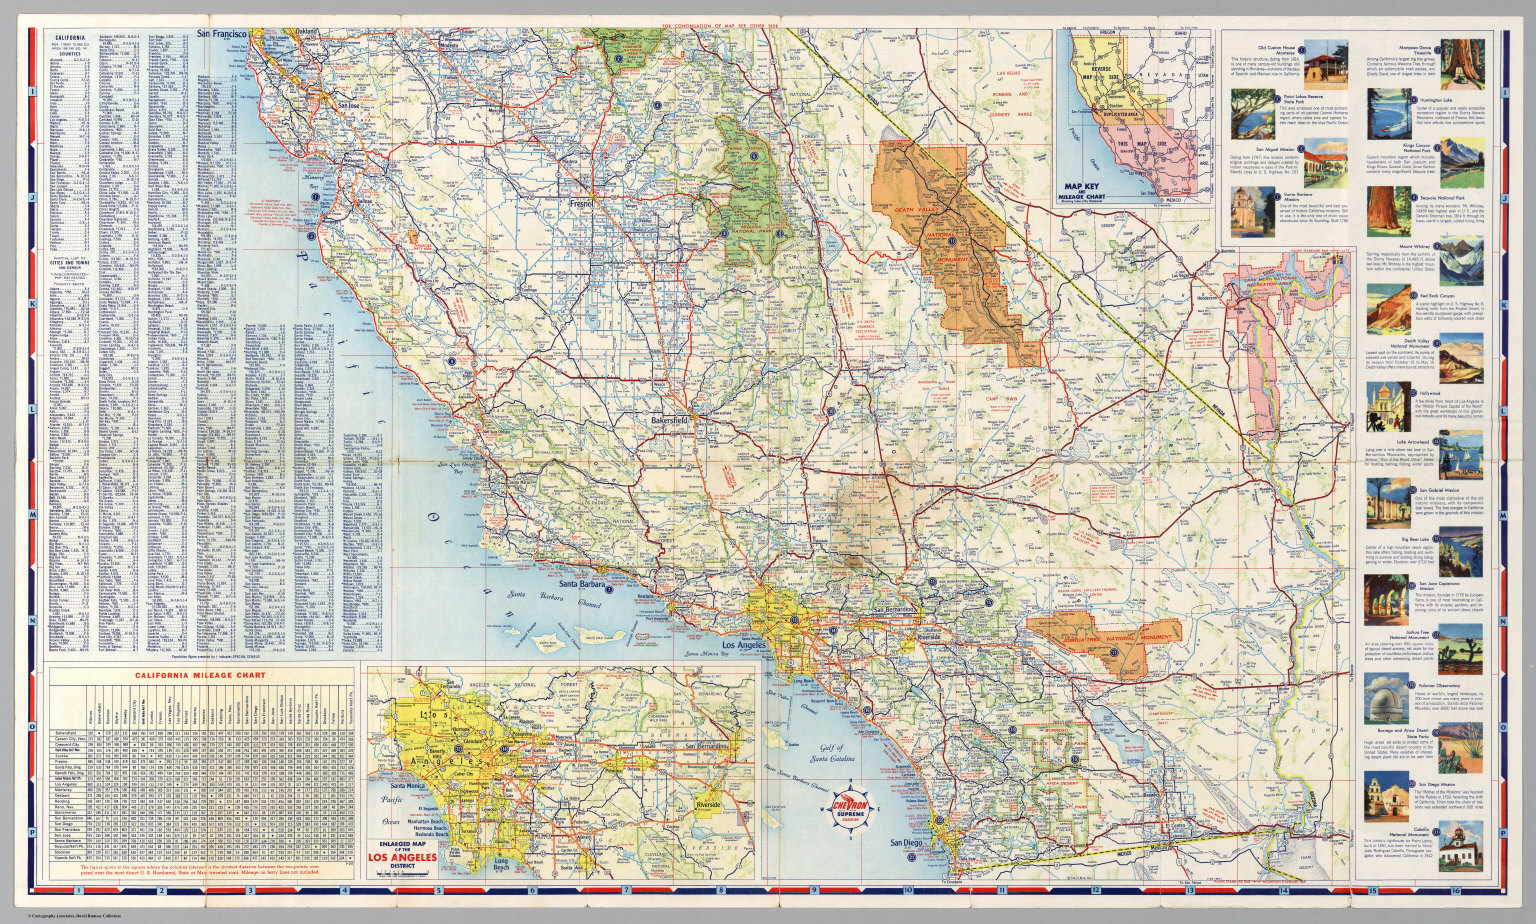 South Half Road Map Of California David Rumsey Historical Map - California road map